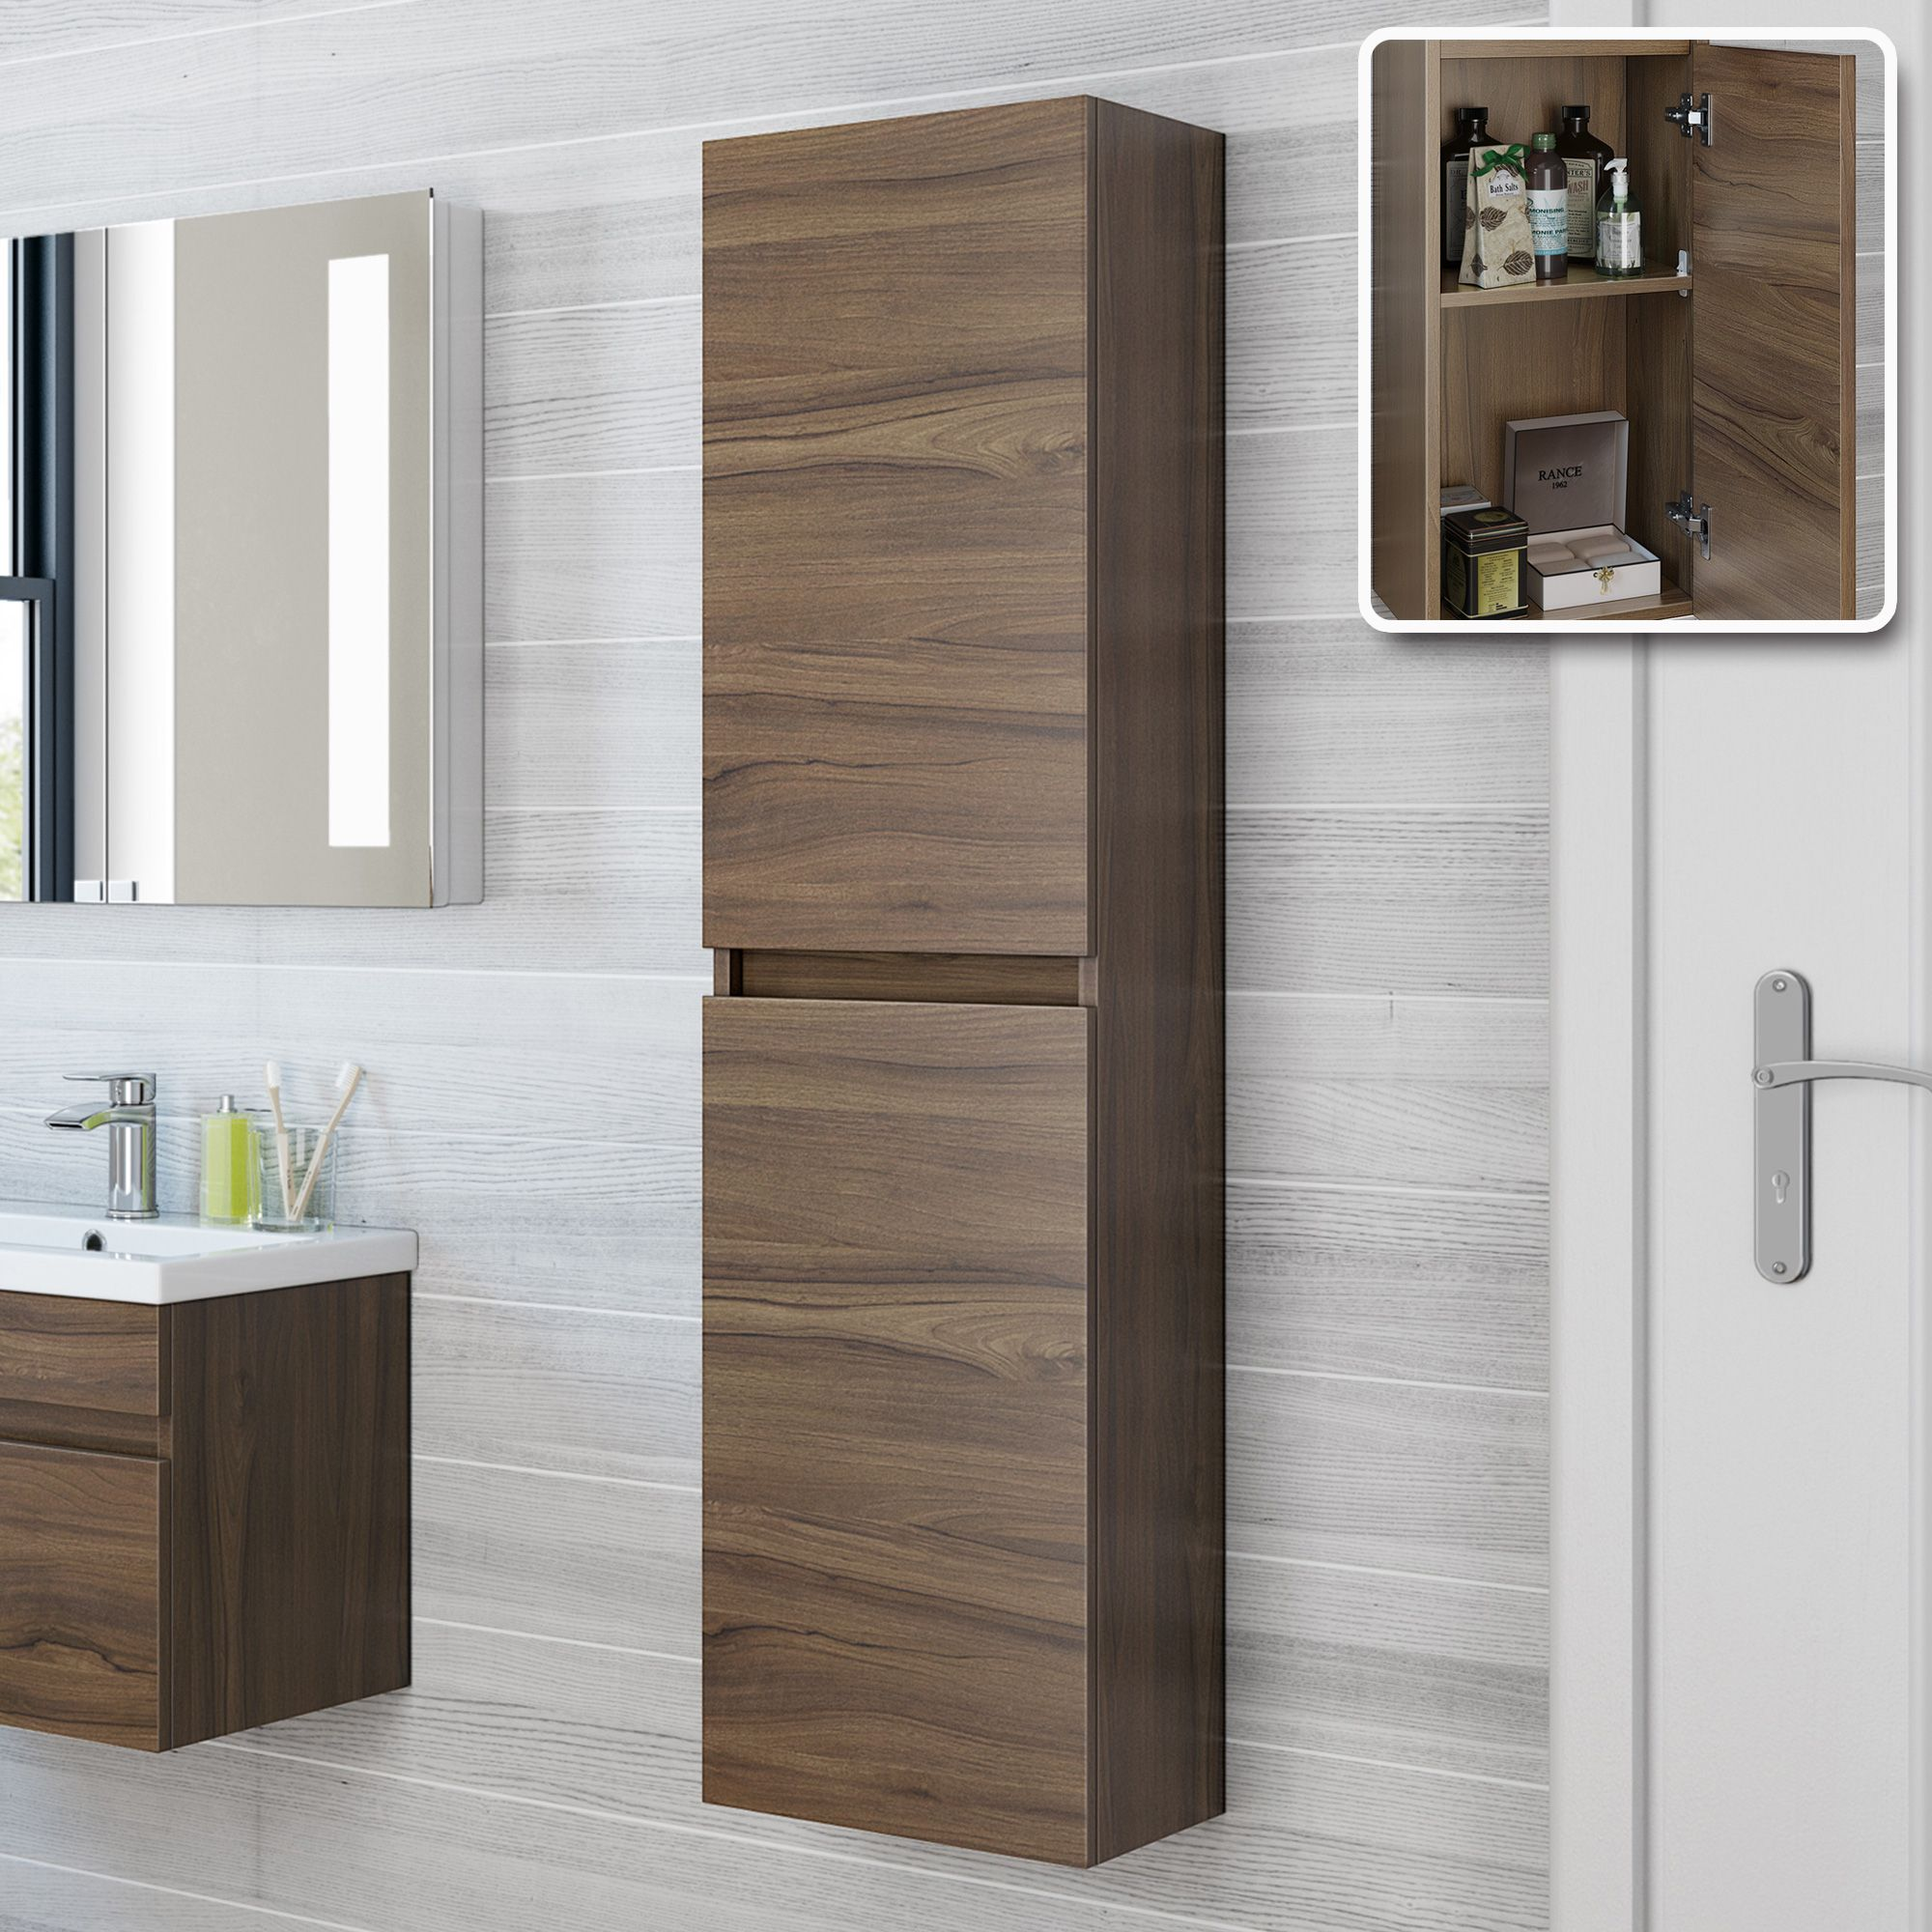 1400mm Walnut Tall Wall Mounted Cabinet Trent Bathempire Tall Cabinet Storage Bathroom Wall Units Bathroom Storage Cabinet